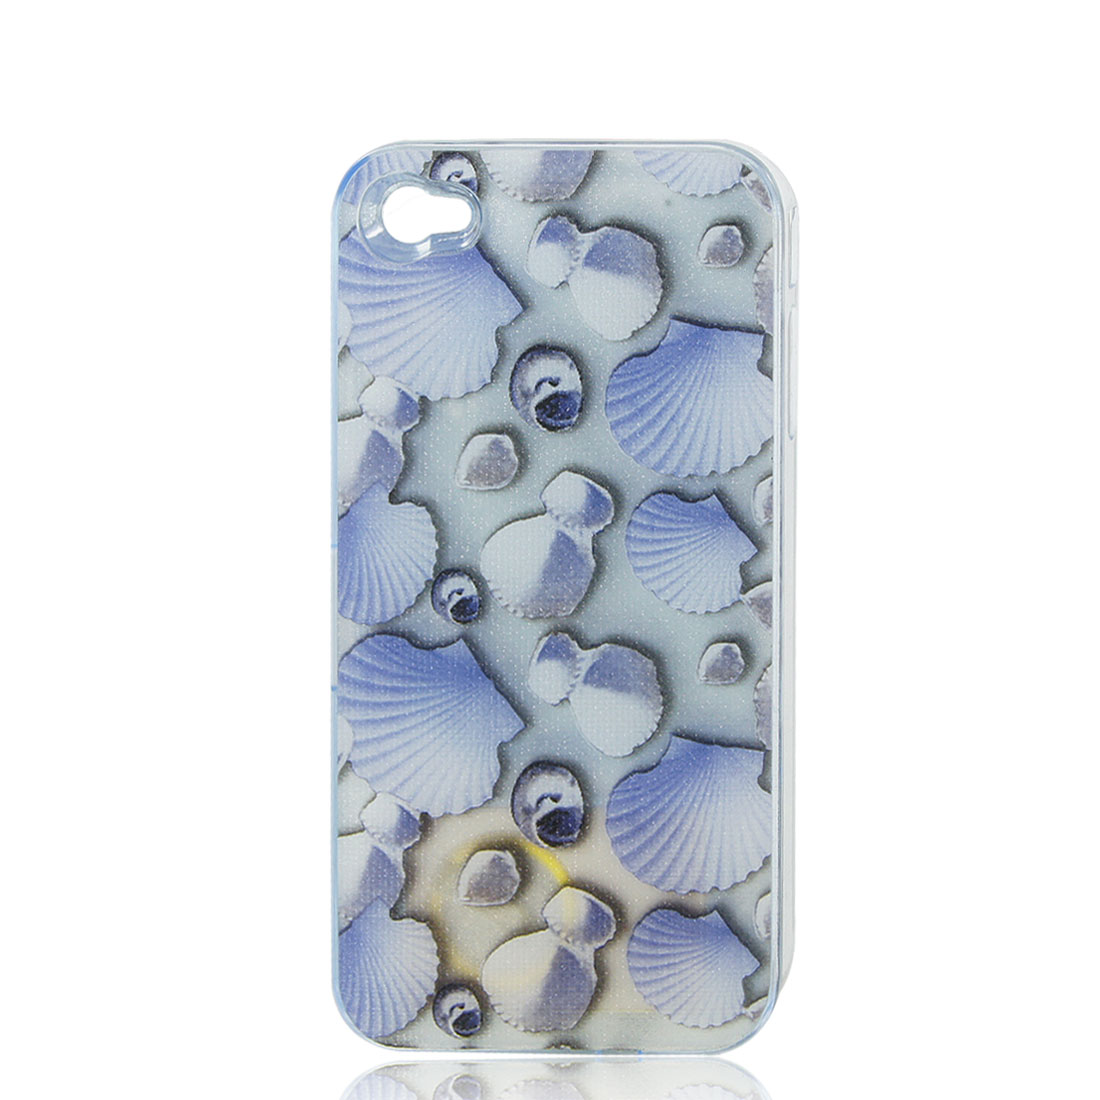 Sea Shell Print Sense Flash Light LED Color Changed Hard Back Case Cover for iPhone 4 4S